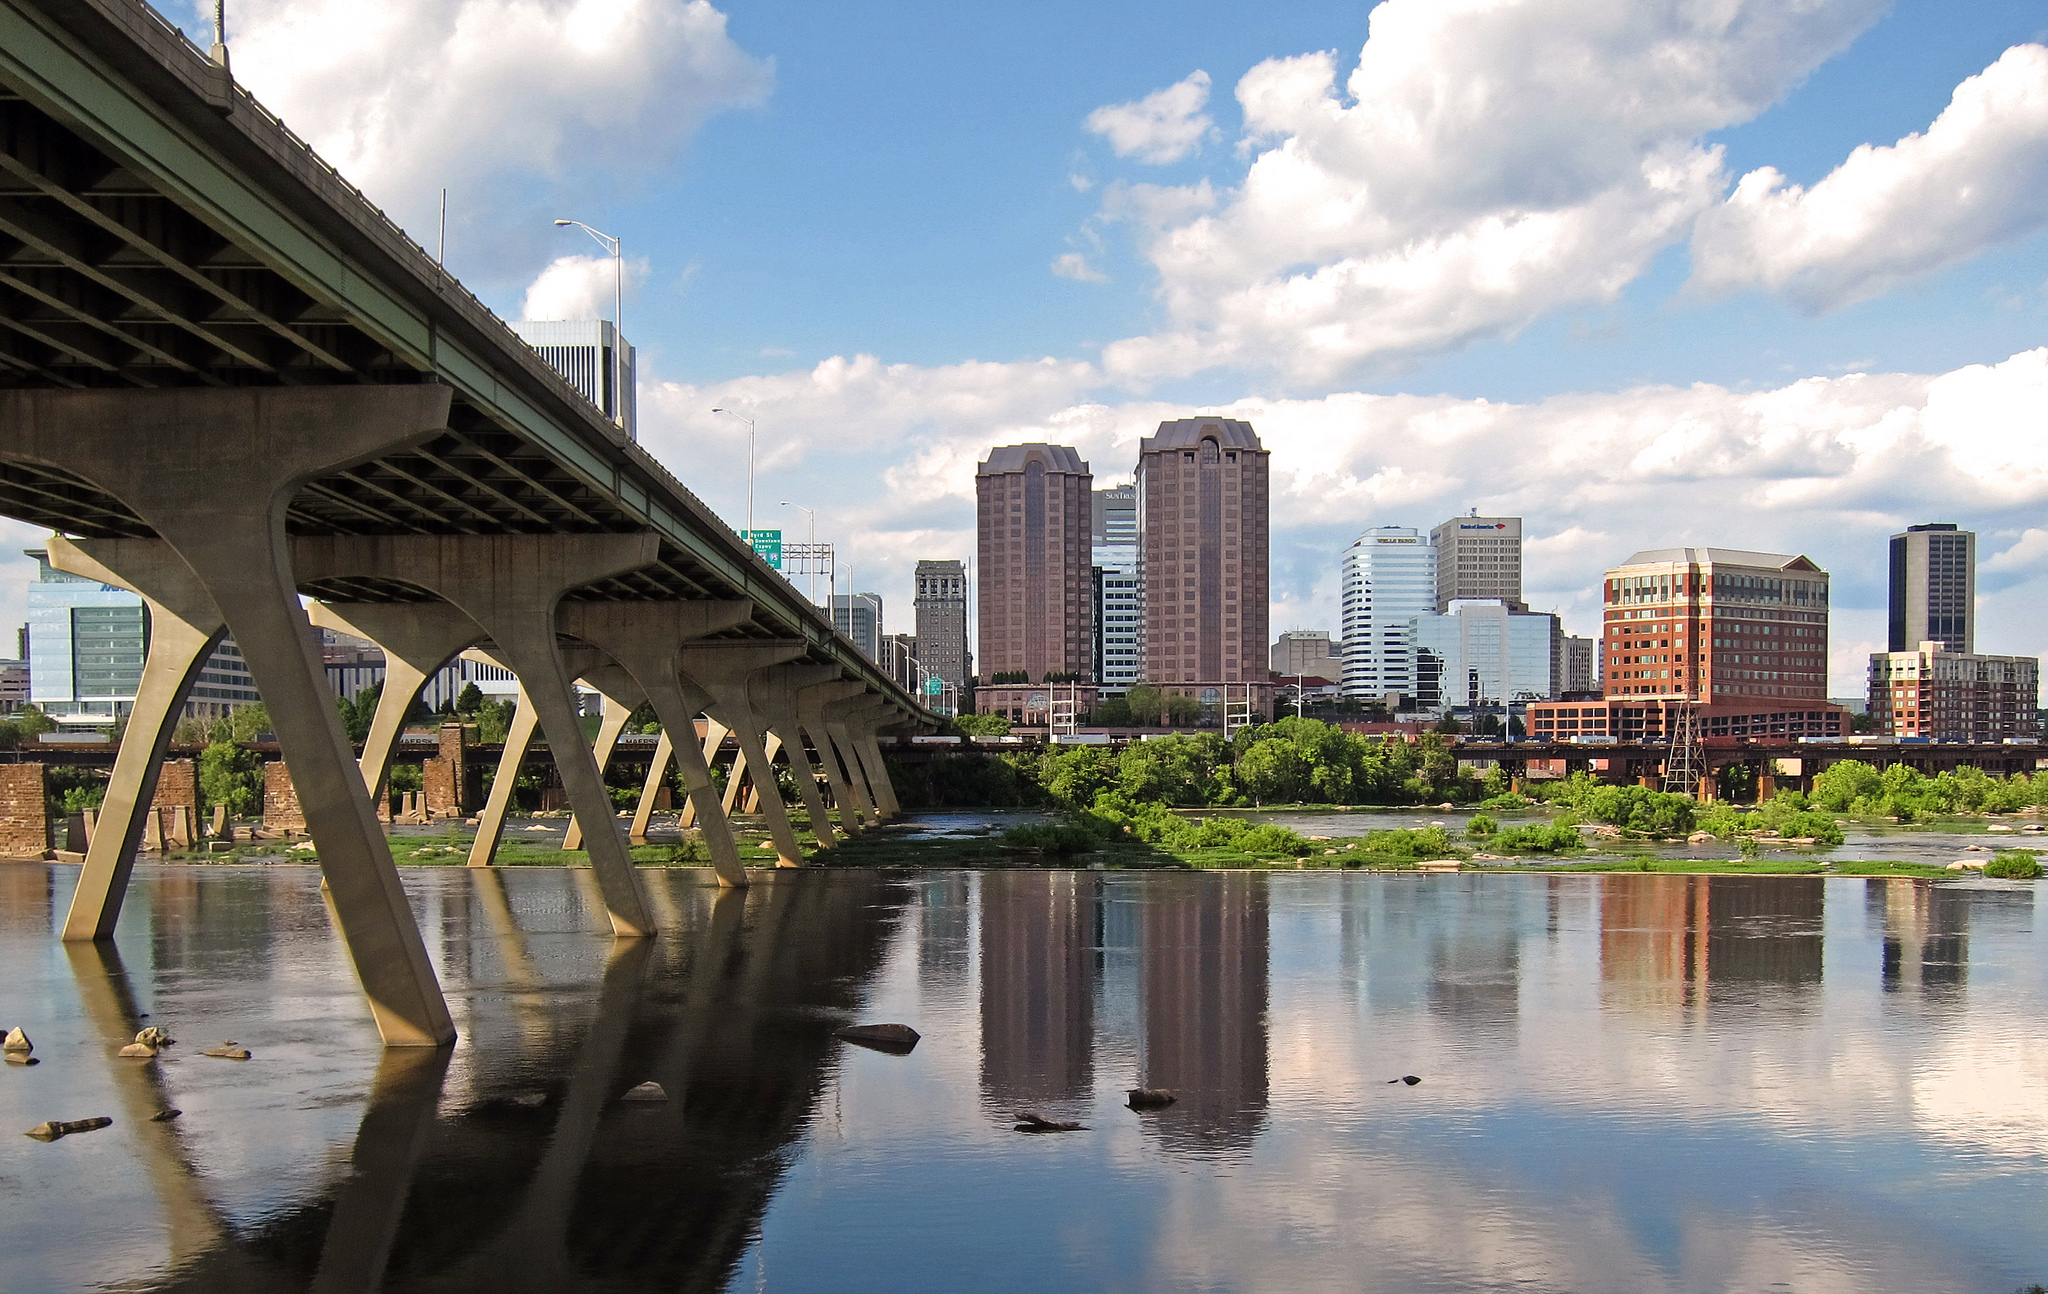 10 best weekend getaways from minneapolis minnesota for Romantic weekend getaways dc